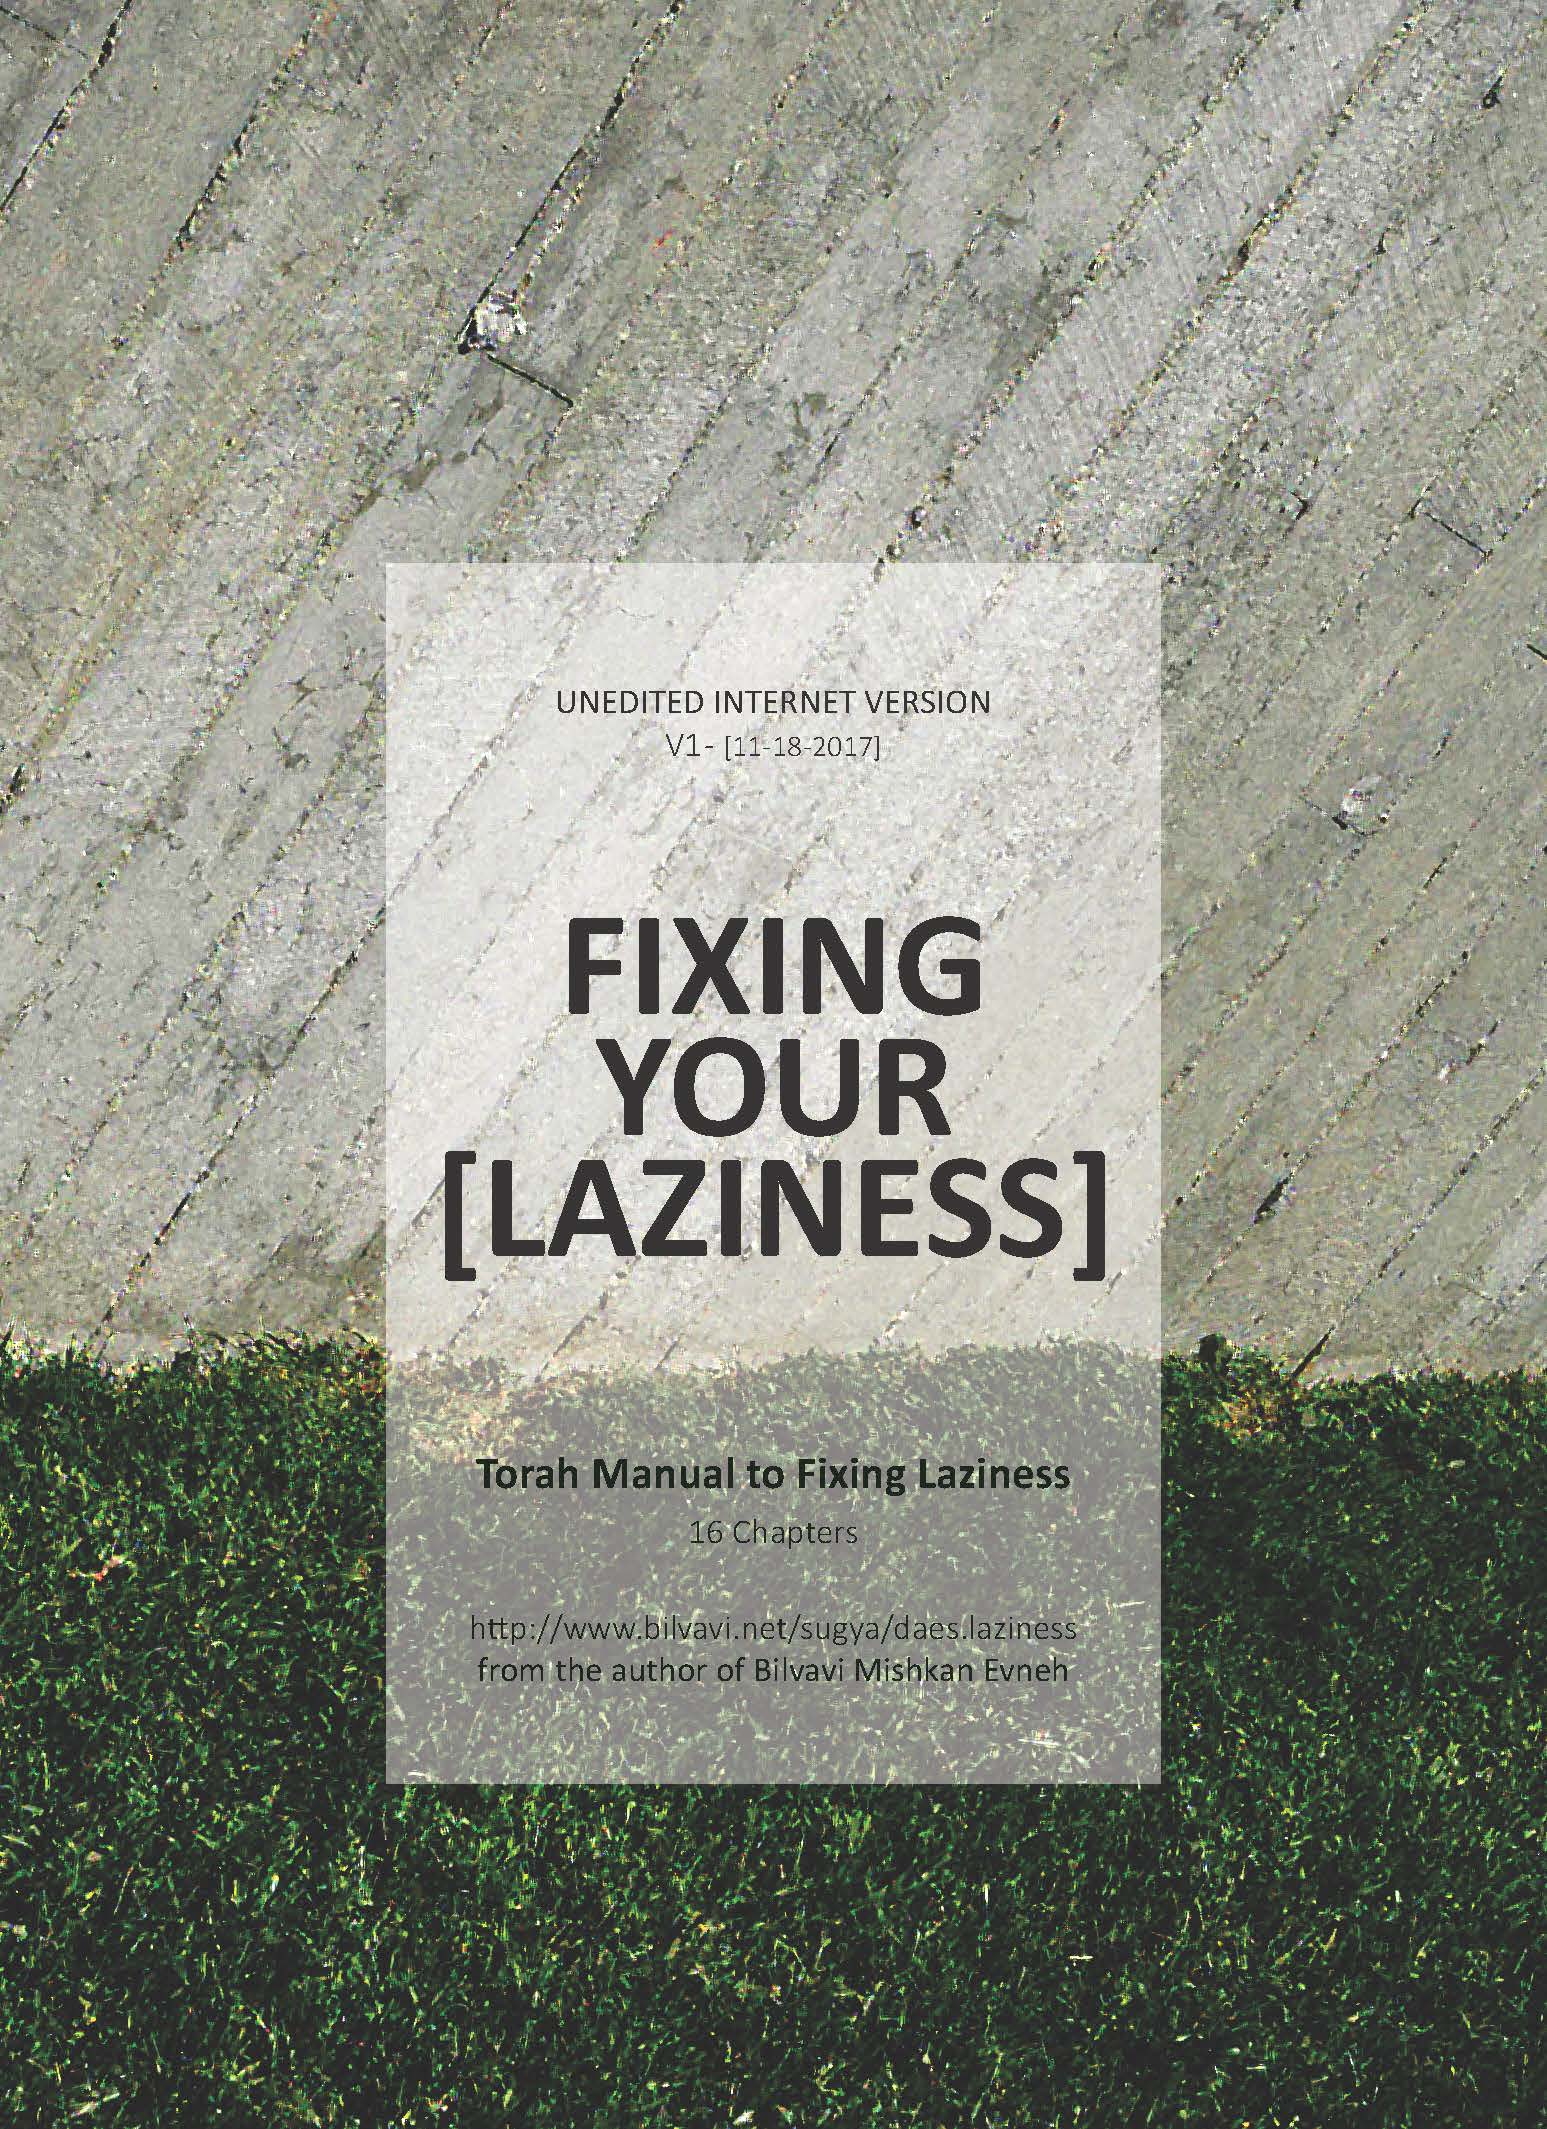 FIXING YOUR LAZINESS